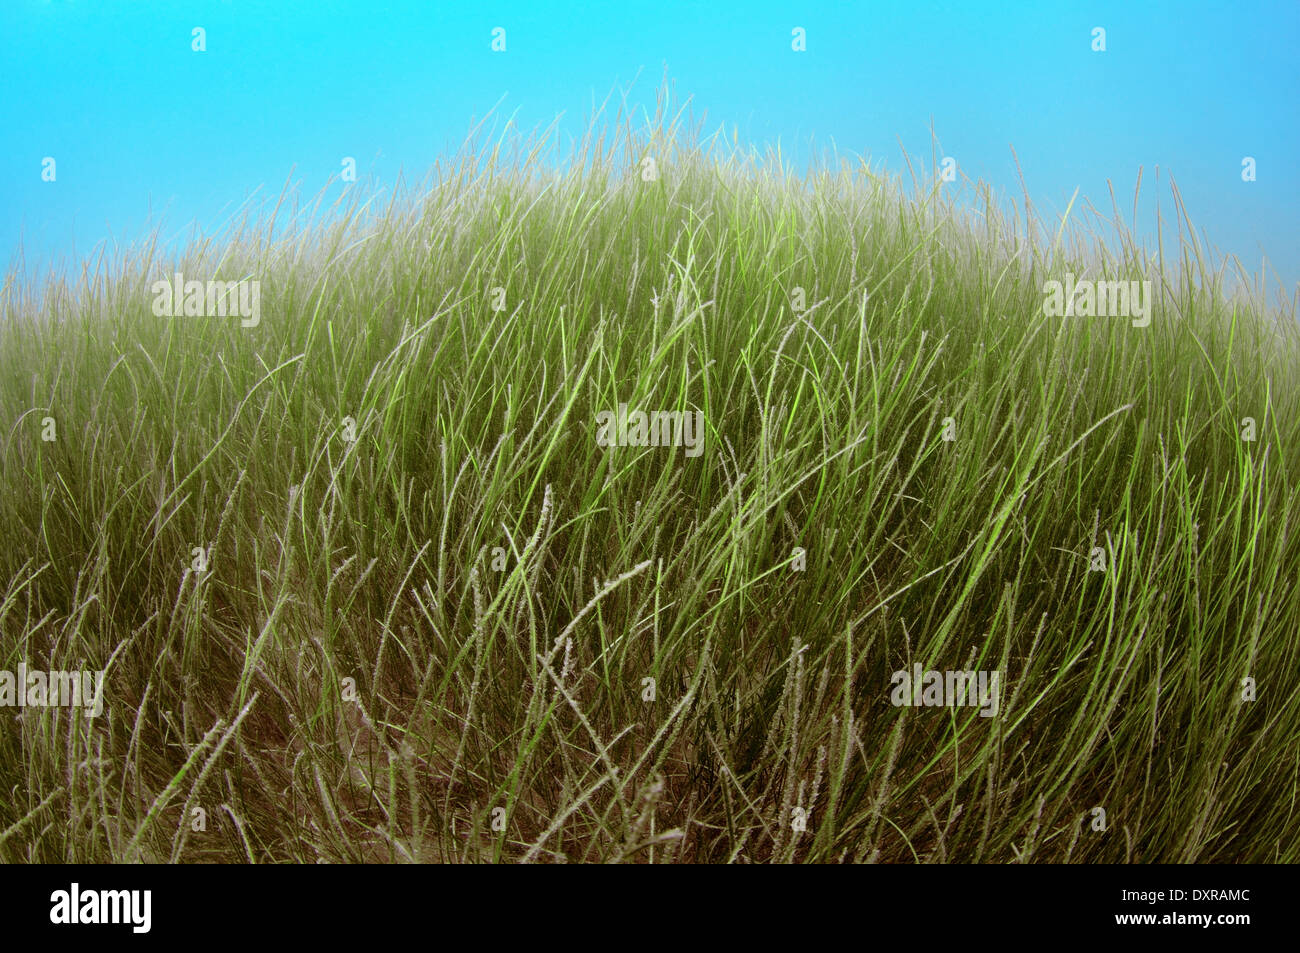 Dense thickets of  Seagrass Zostera on the sandbanks on the blue water background - Stock Image